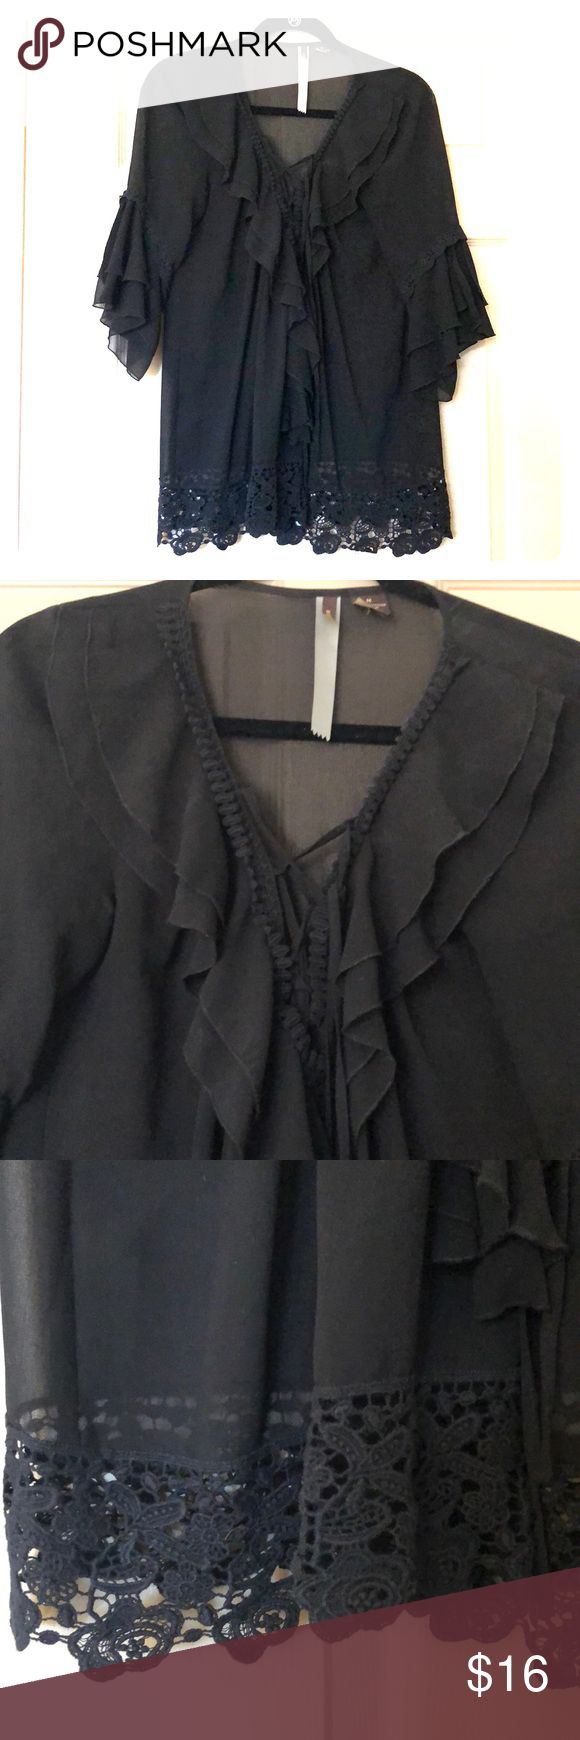 Black going out top Boutique top - black and slightly sheer. Perfect for going out! Size M. Gently used. Tops Blouses